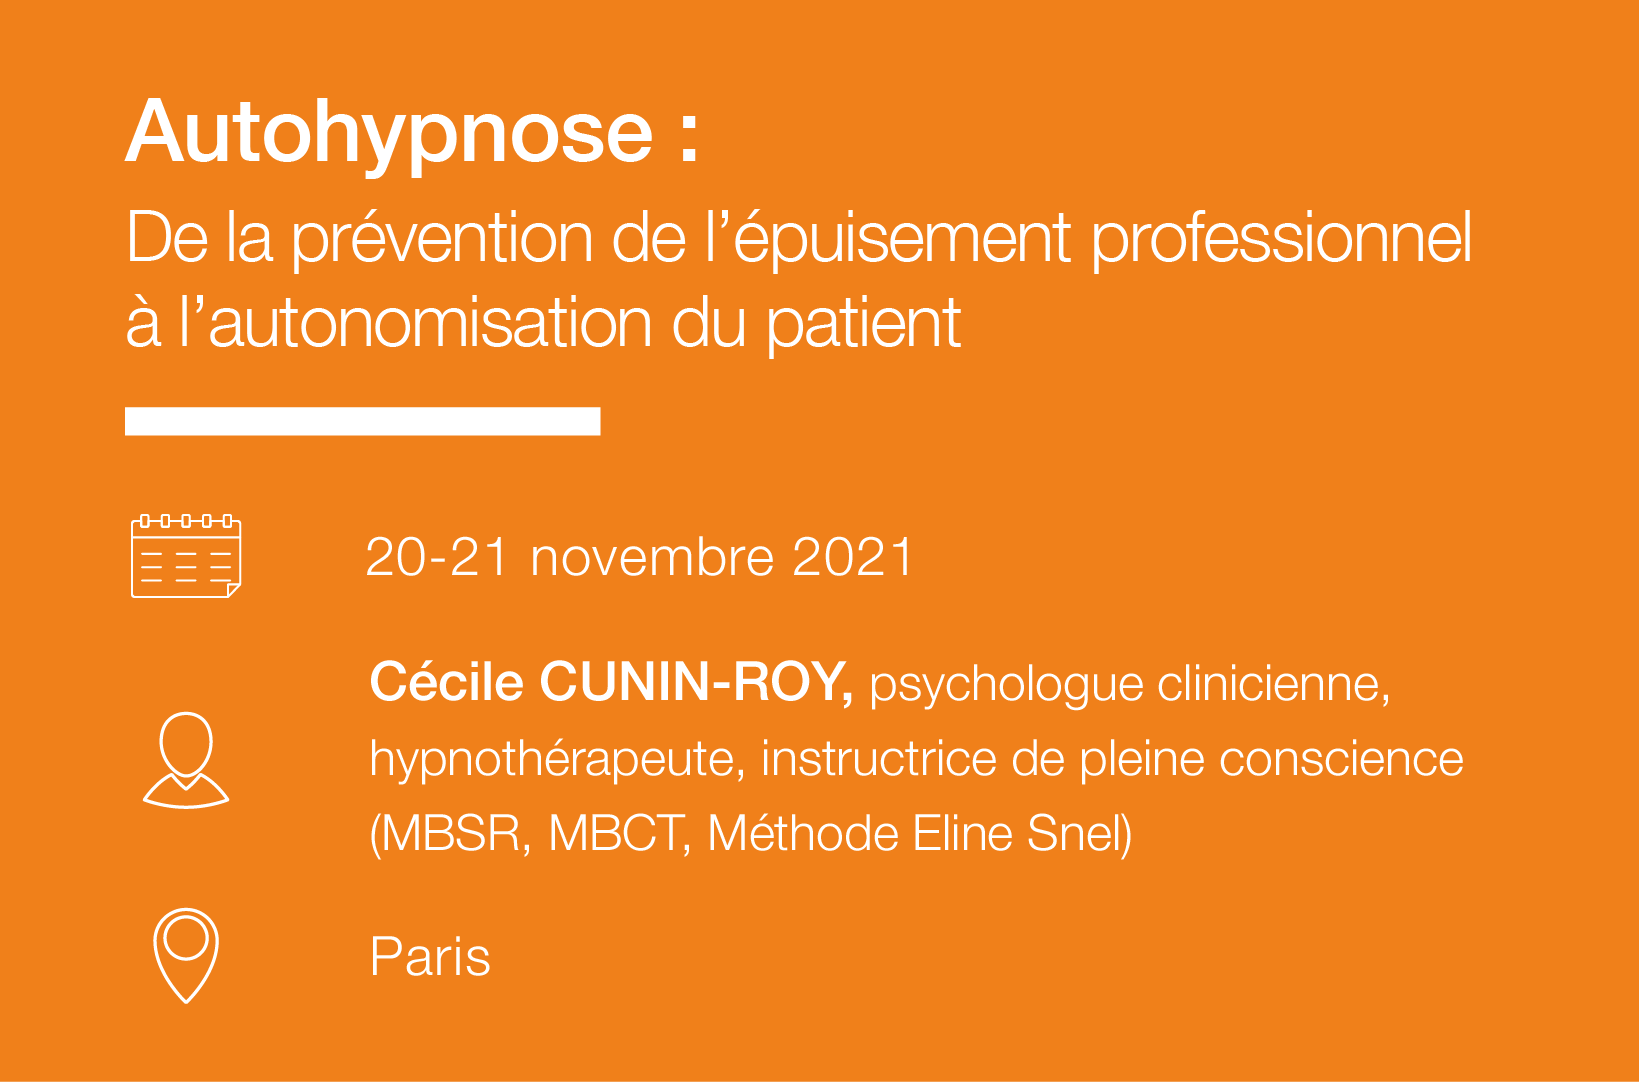 Seminaire Autohypnose Prevention epuisement professionnel-IFH